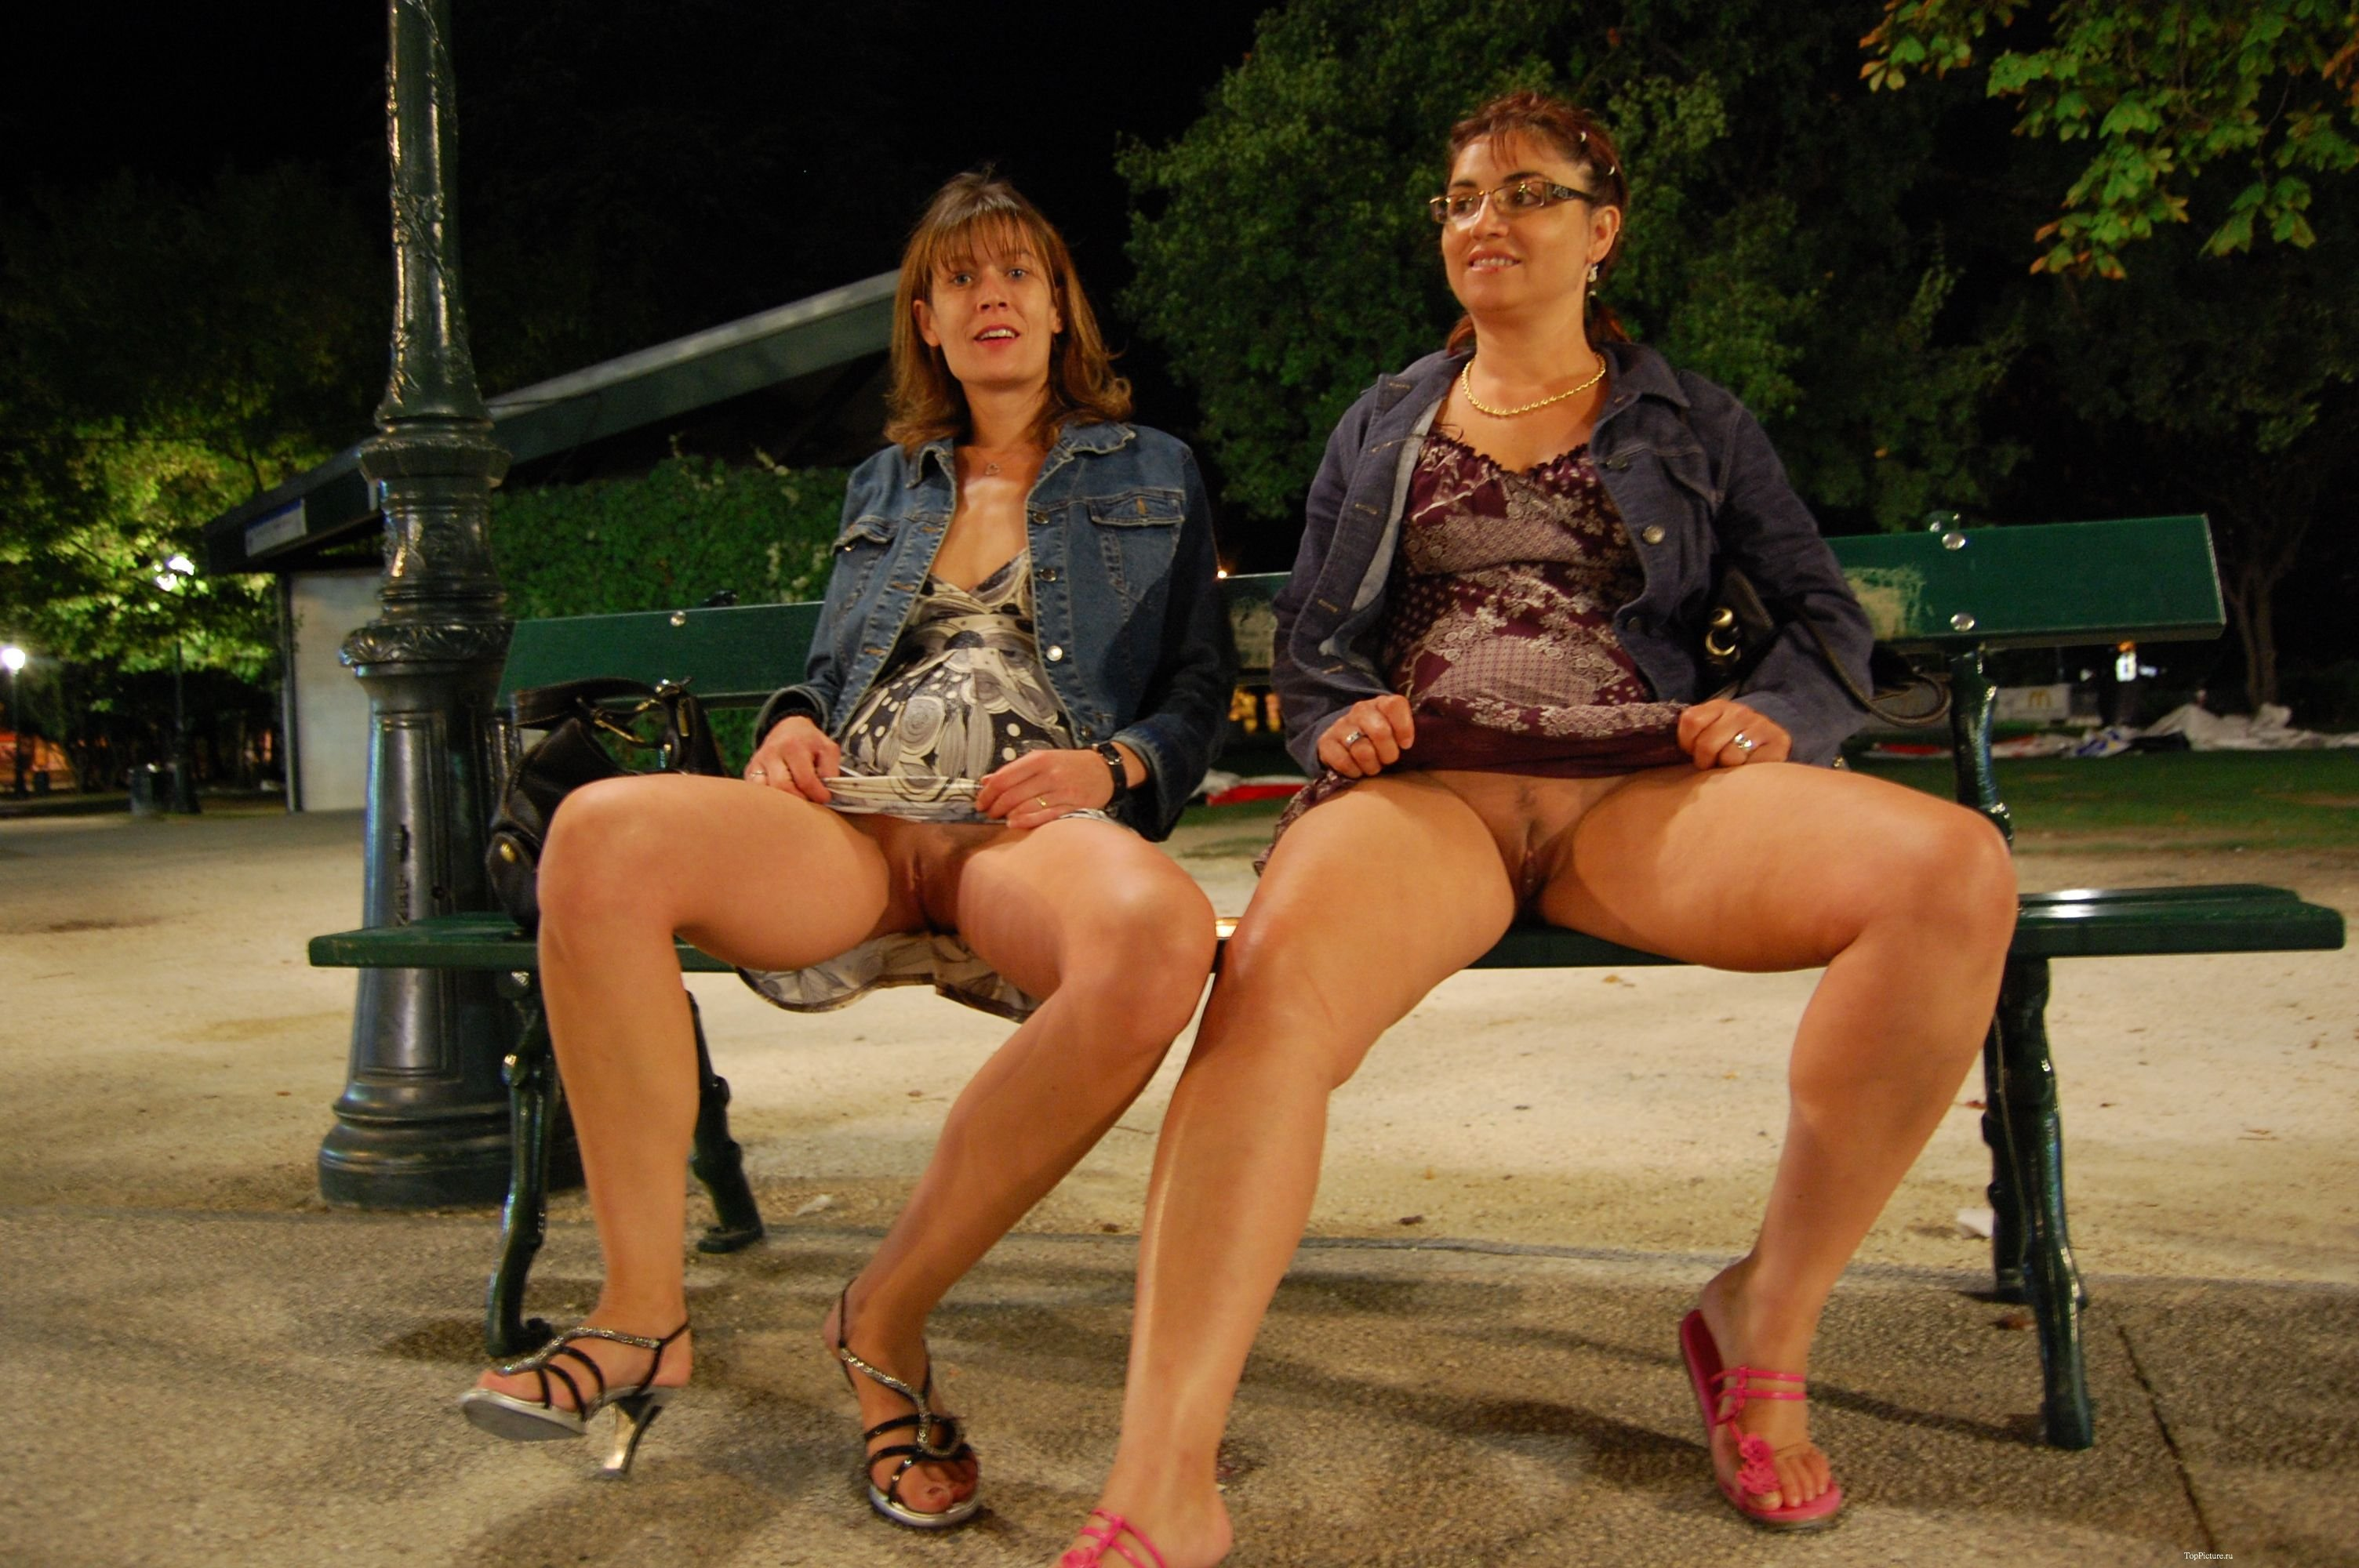 Pantyless Wife Leg Up On Park Bench For Stranger Behind Her No Panties Pics, Public Flashing Pics, Pussy Flash Pics